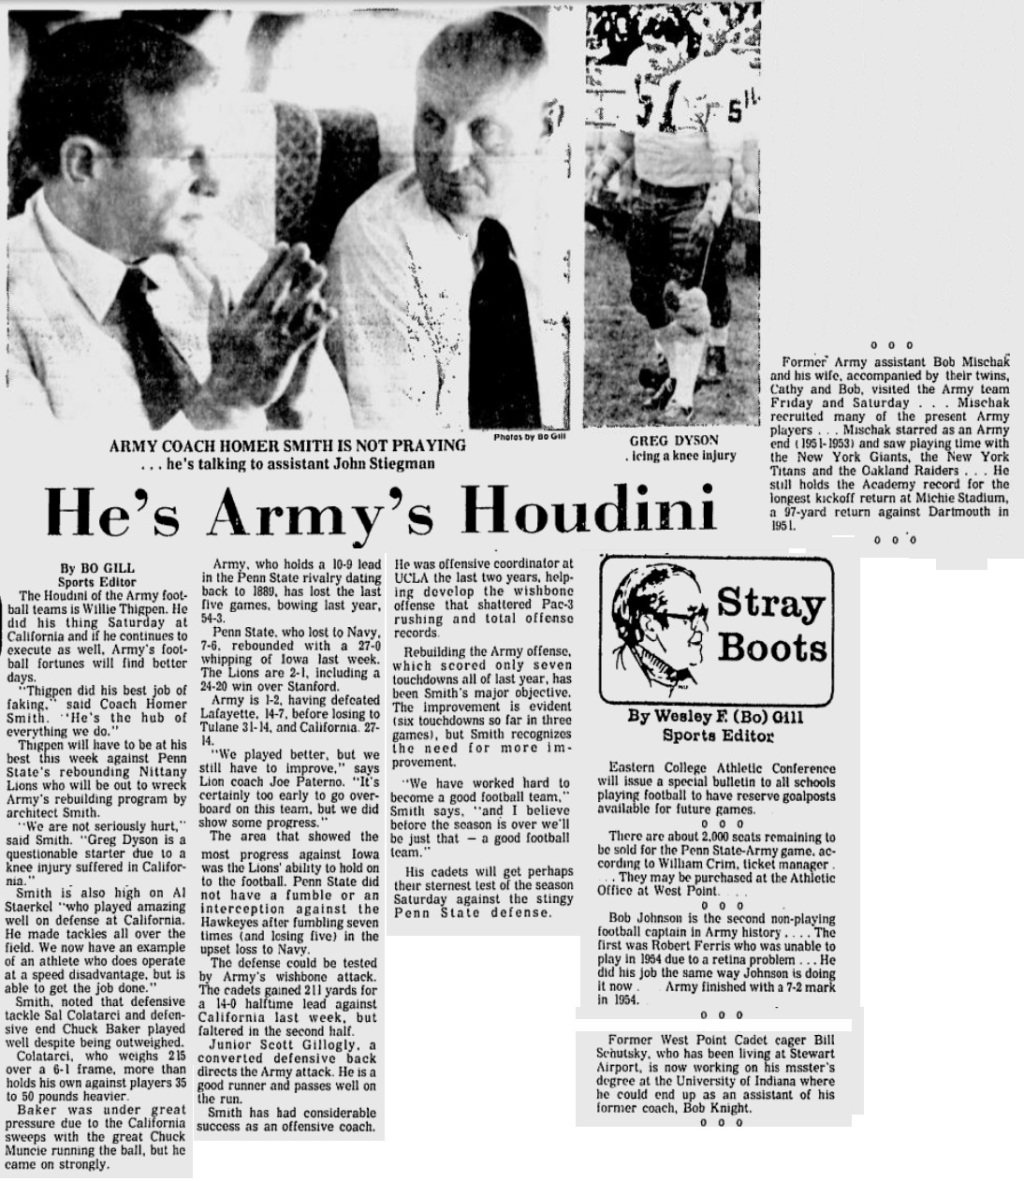 ArmyFB_1974_vsCal-pre_EveningNews_Oct21974